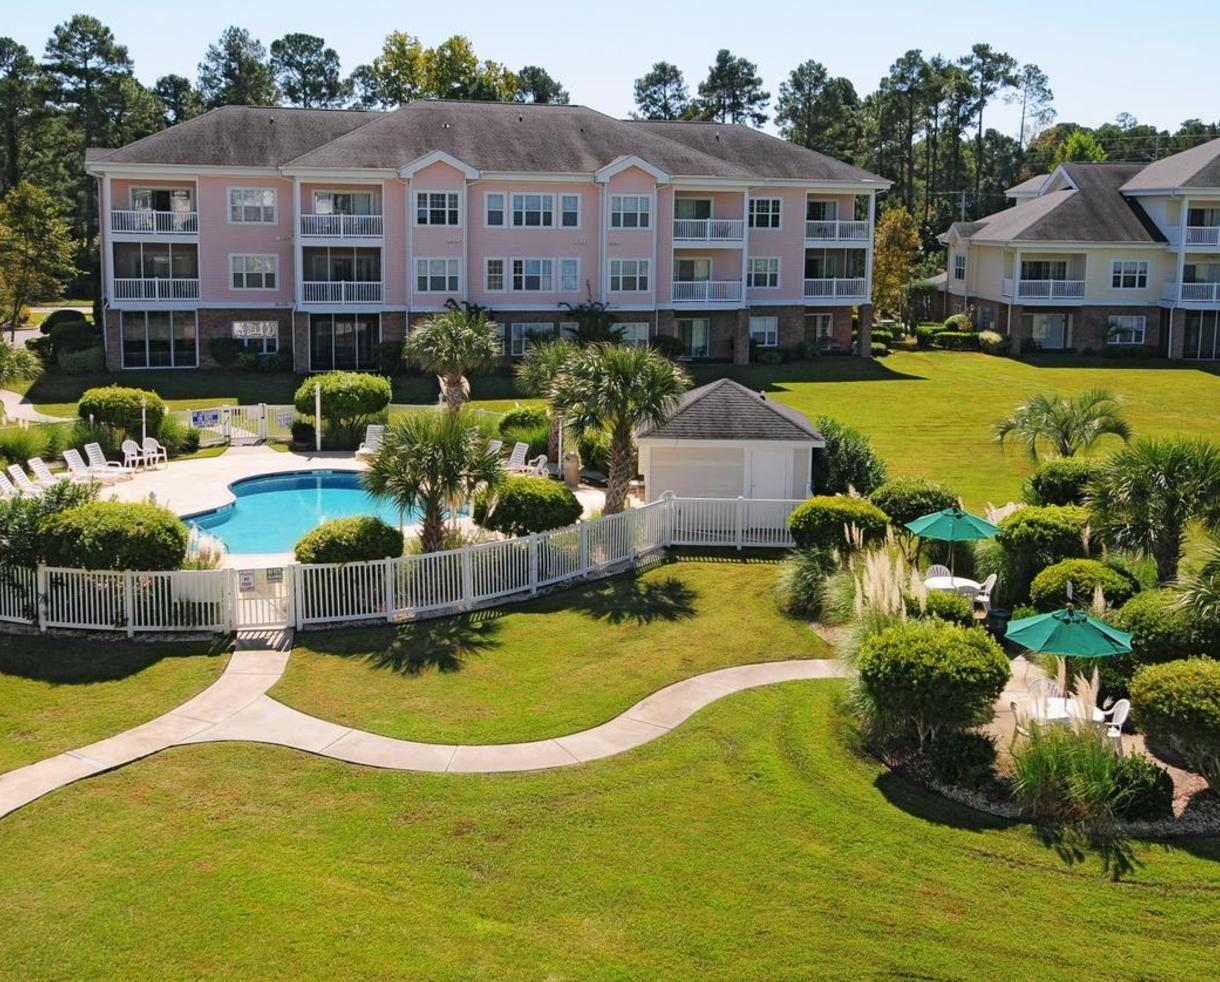 Myrtlewood Villas in Myrtle Beach